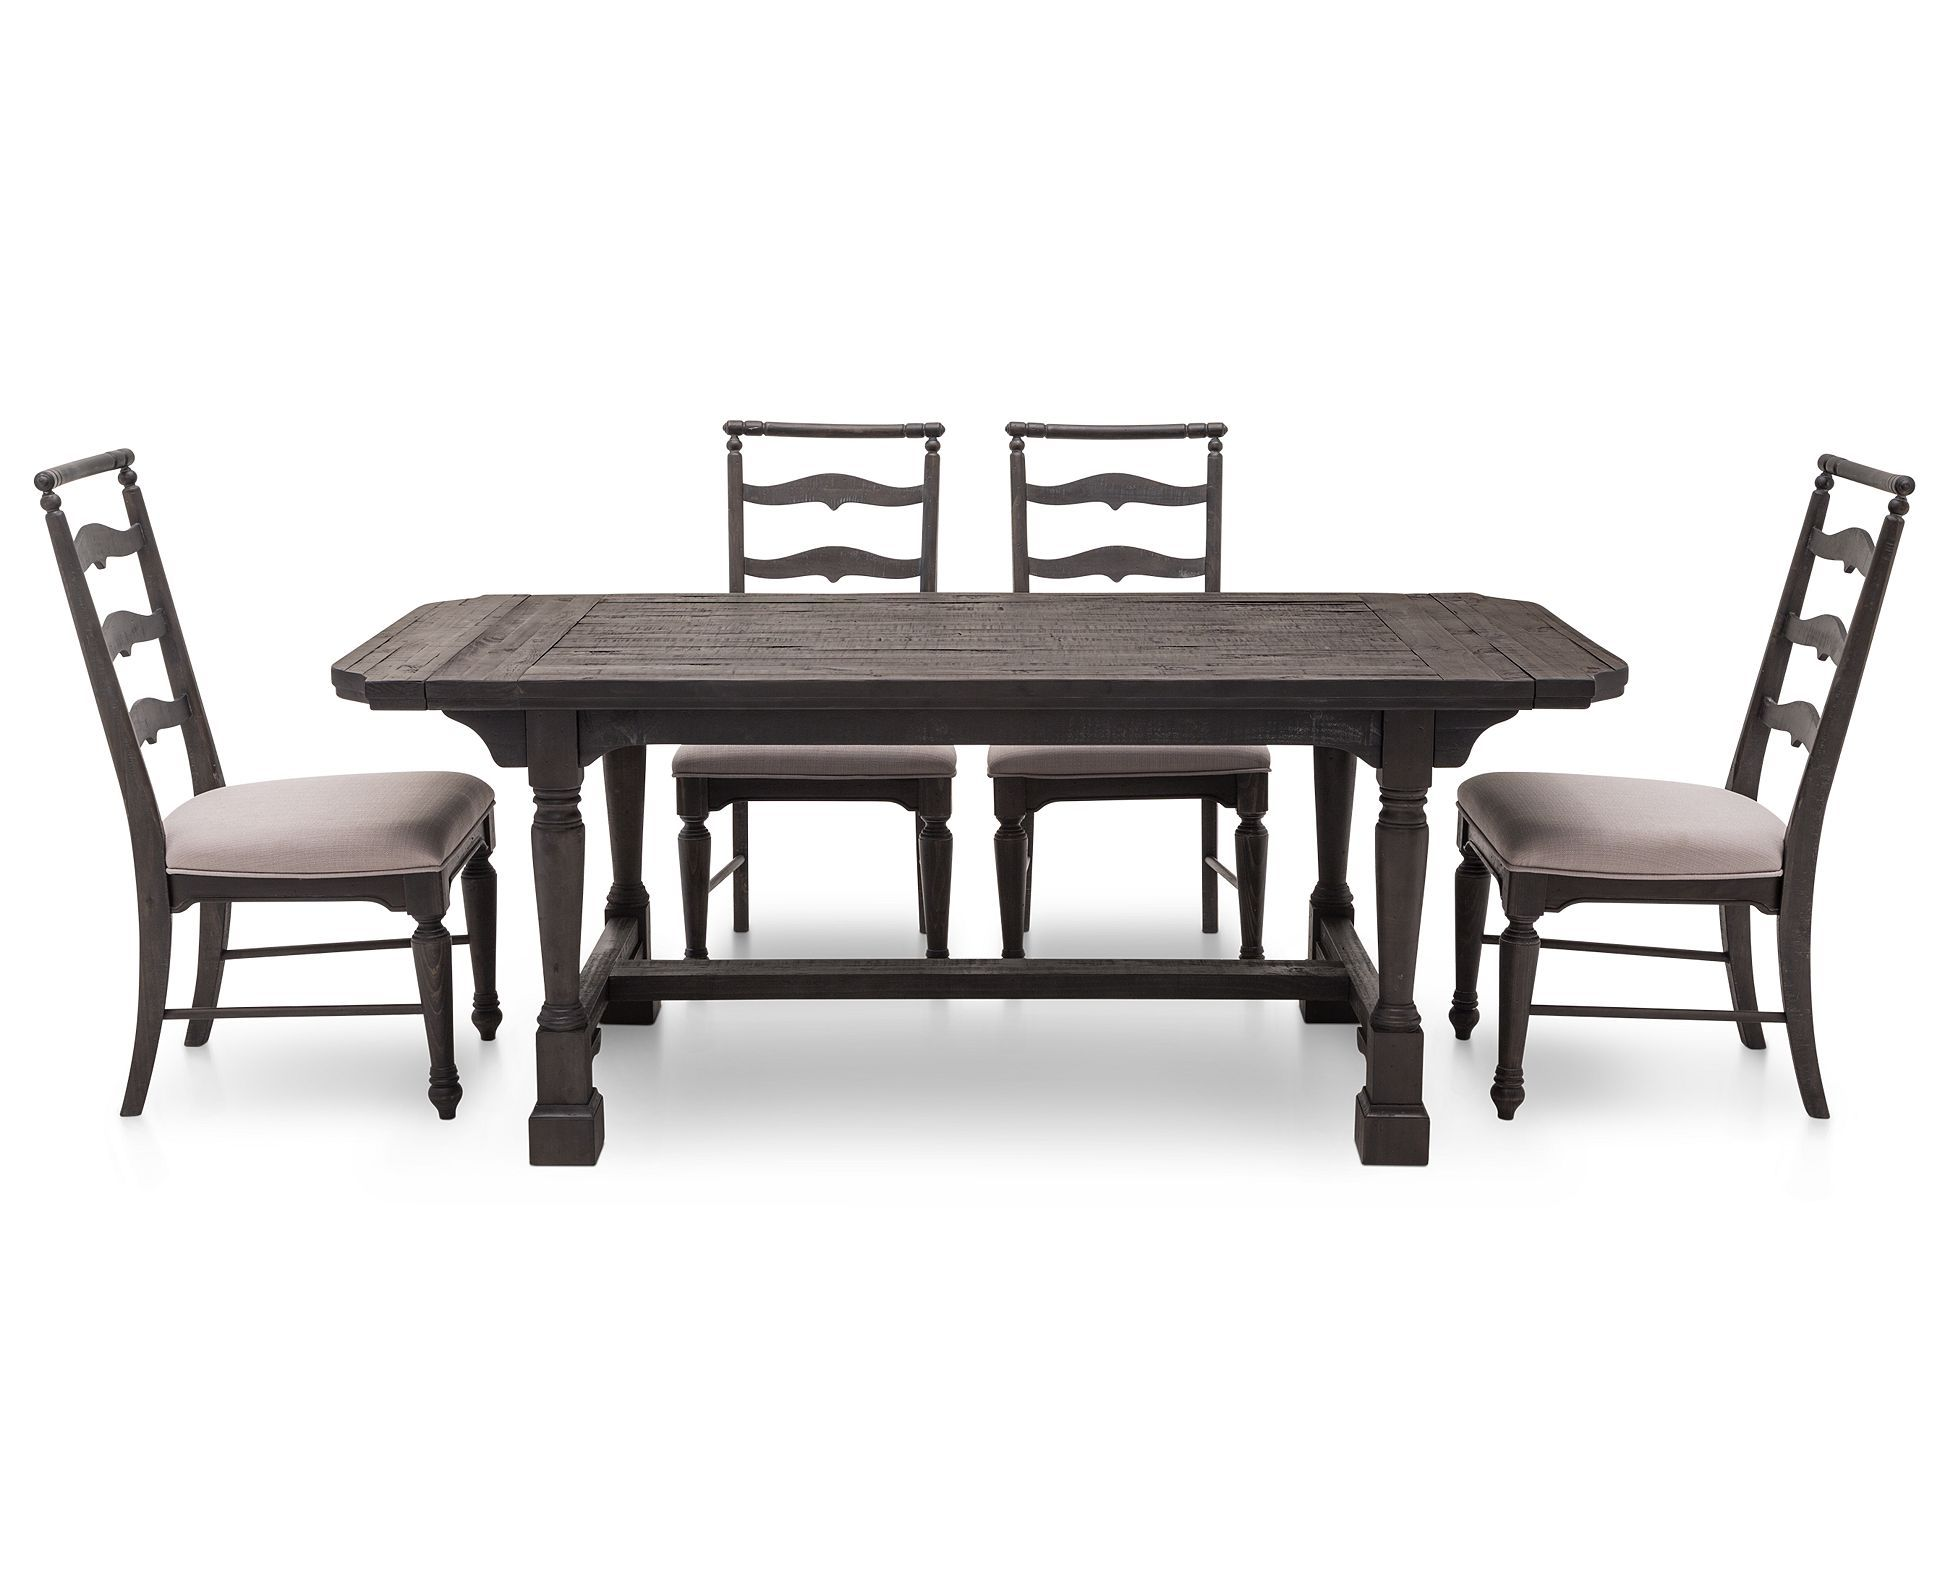 BLACK FRIDAY Save 100 On The Bedford 5 Piece Dining Set Now 1299 Blackfriday Furniturerow